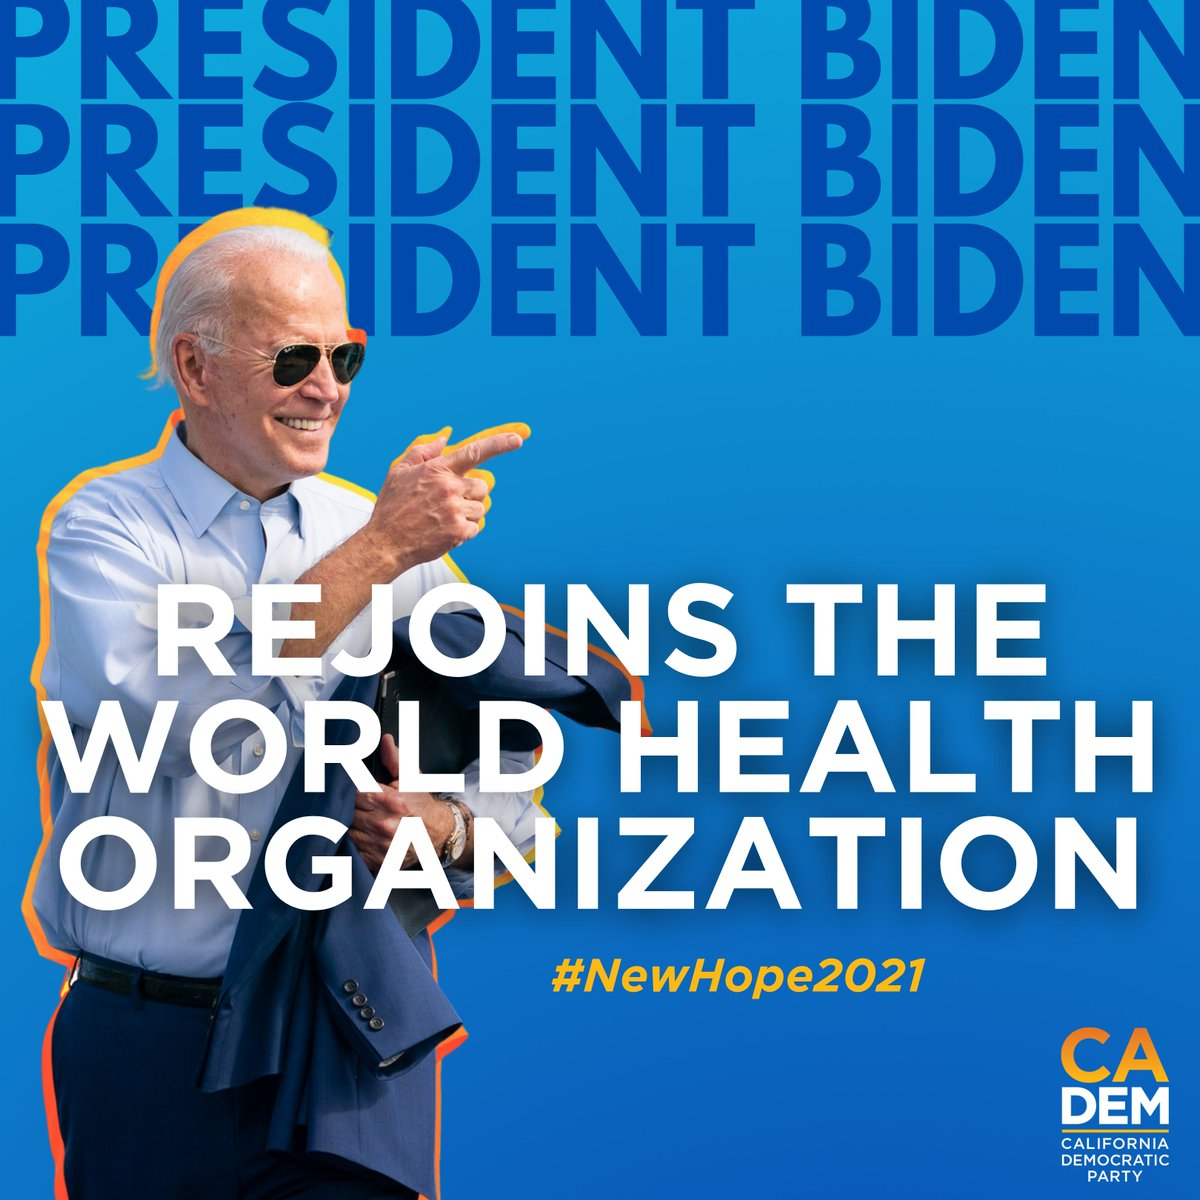 #ScienceisBack President Biden rejoins the World Health Organization: Bringing the United States back onto the global health stage!